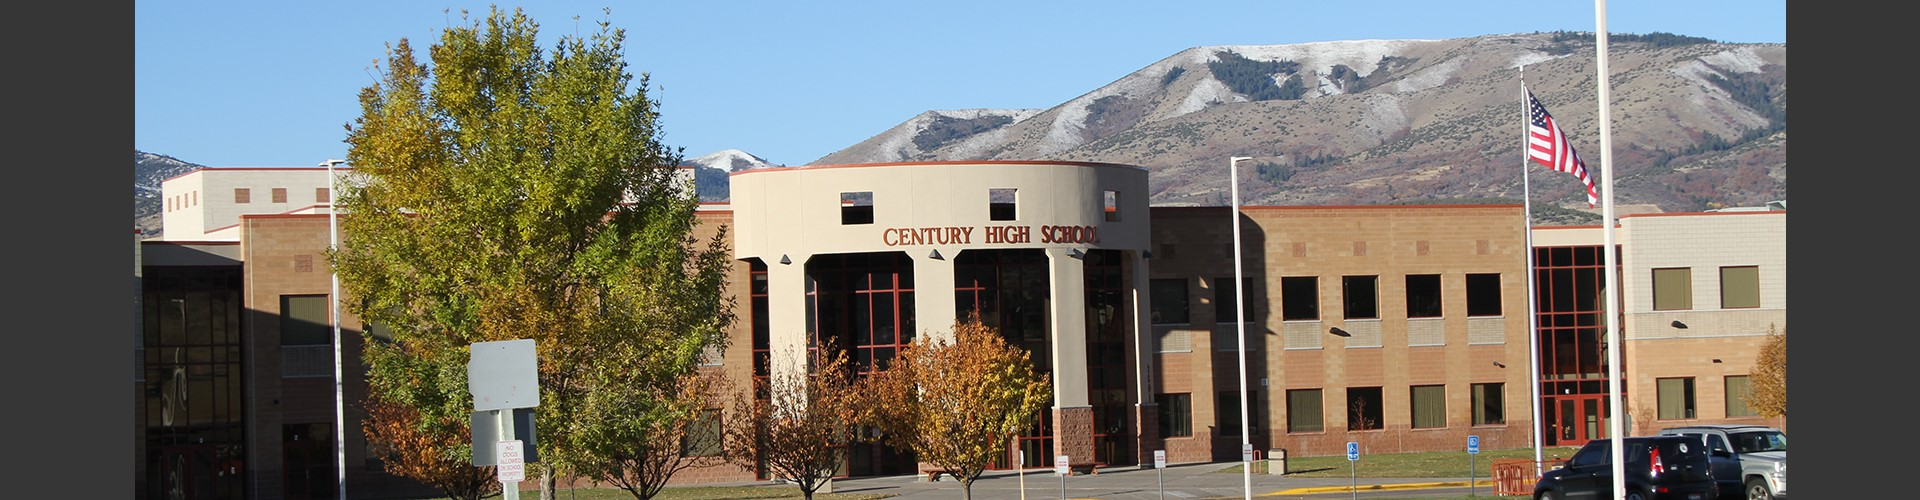 The front of the Century High School building.